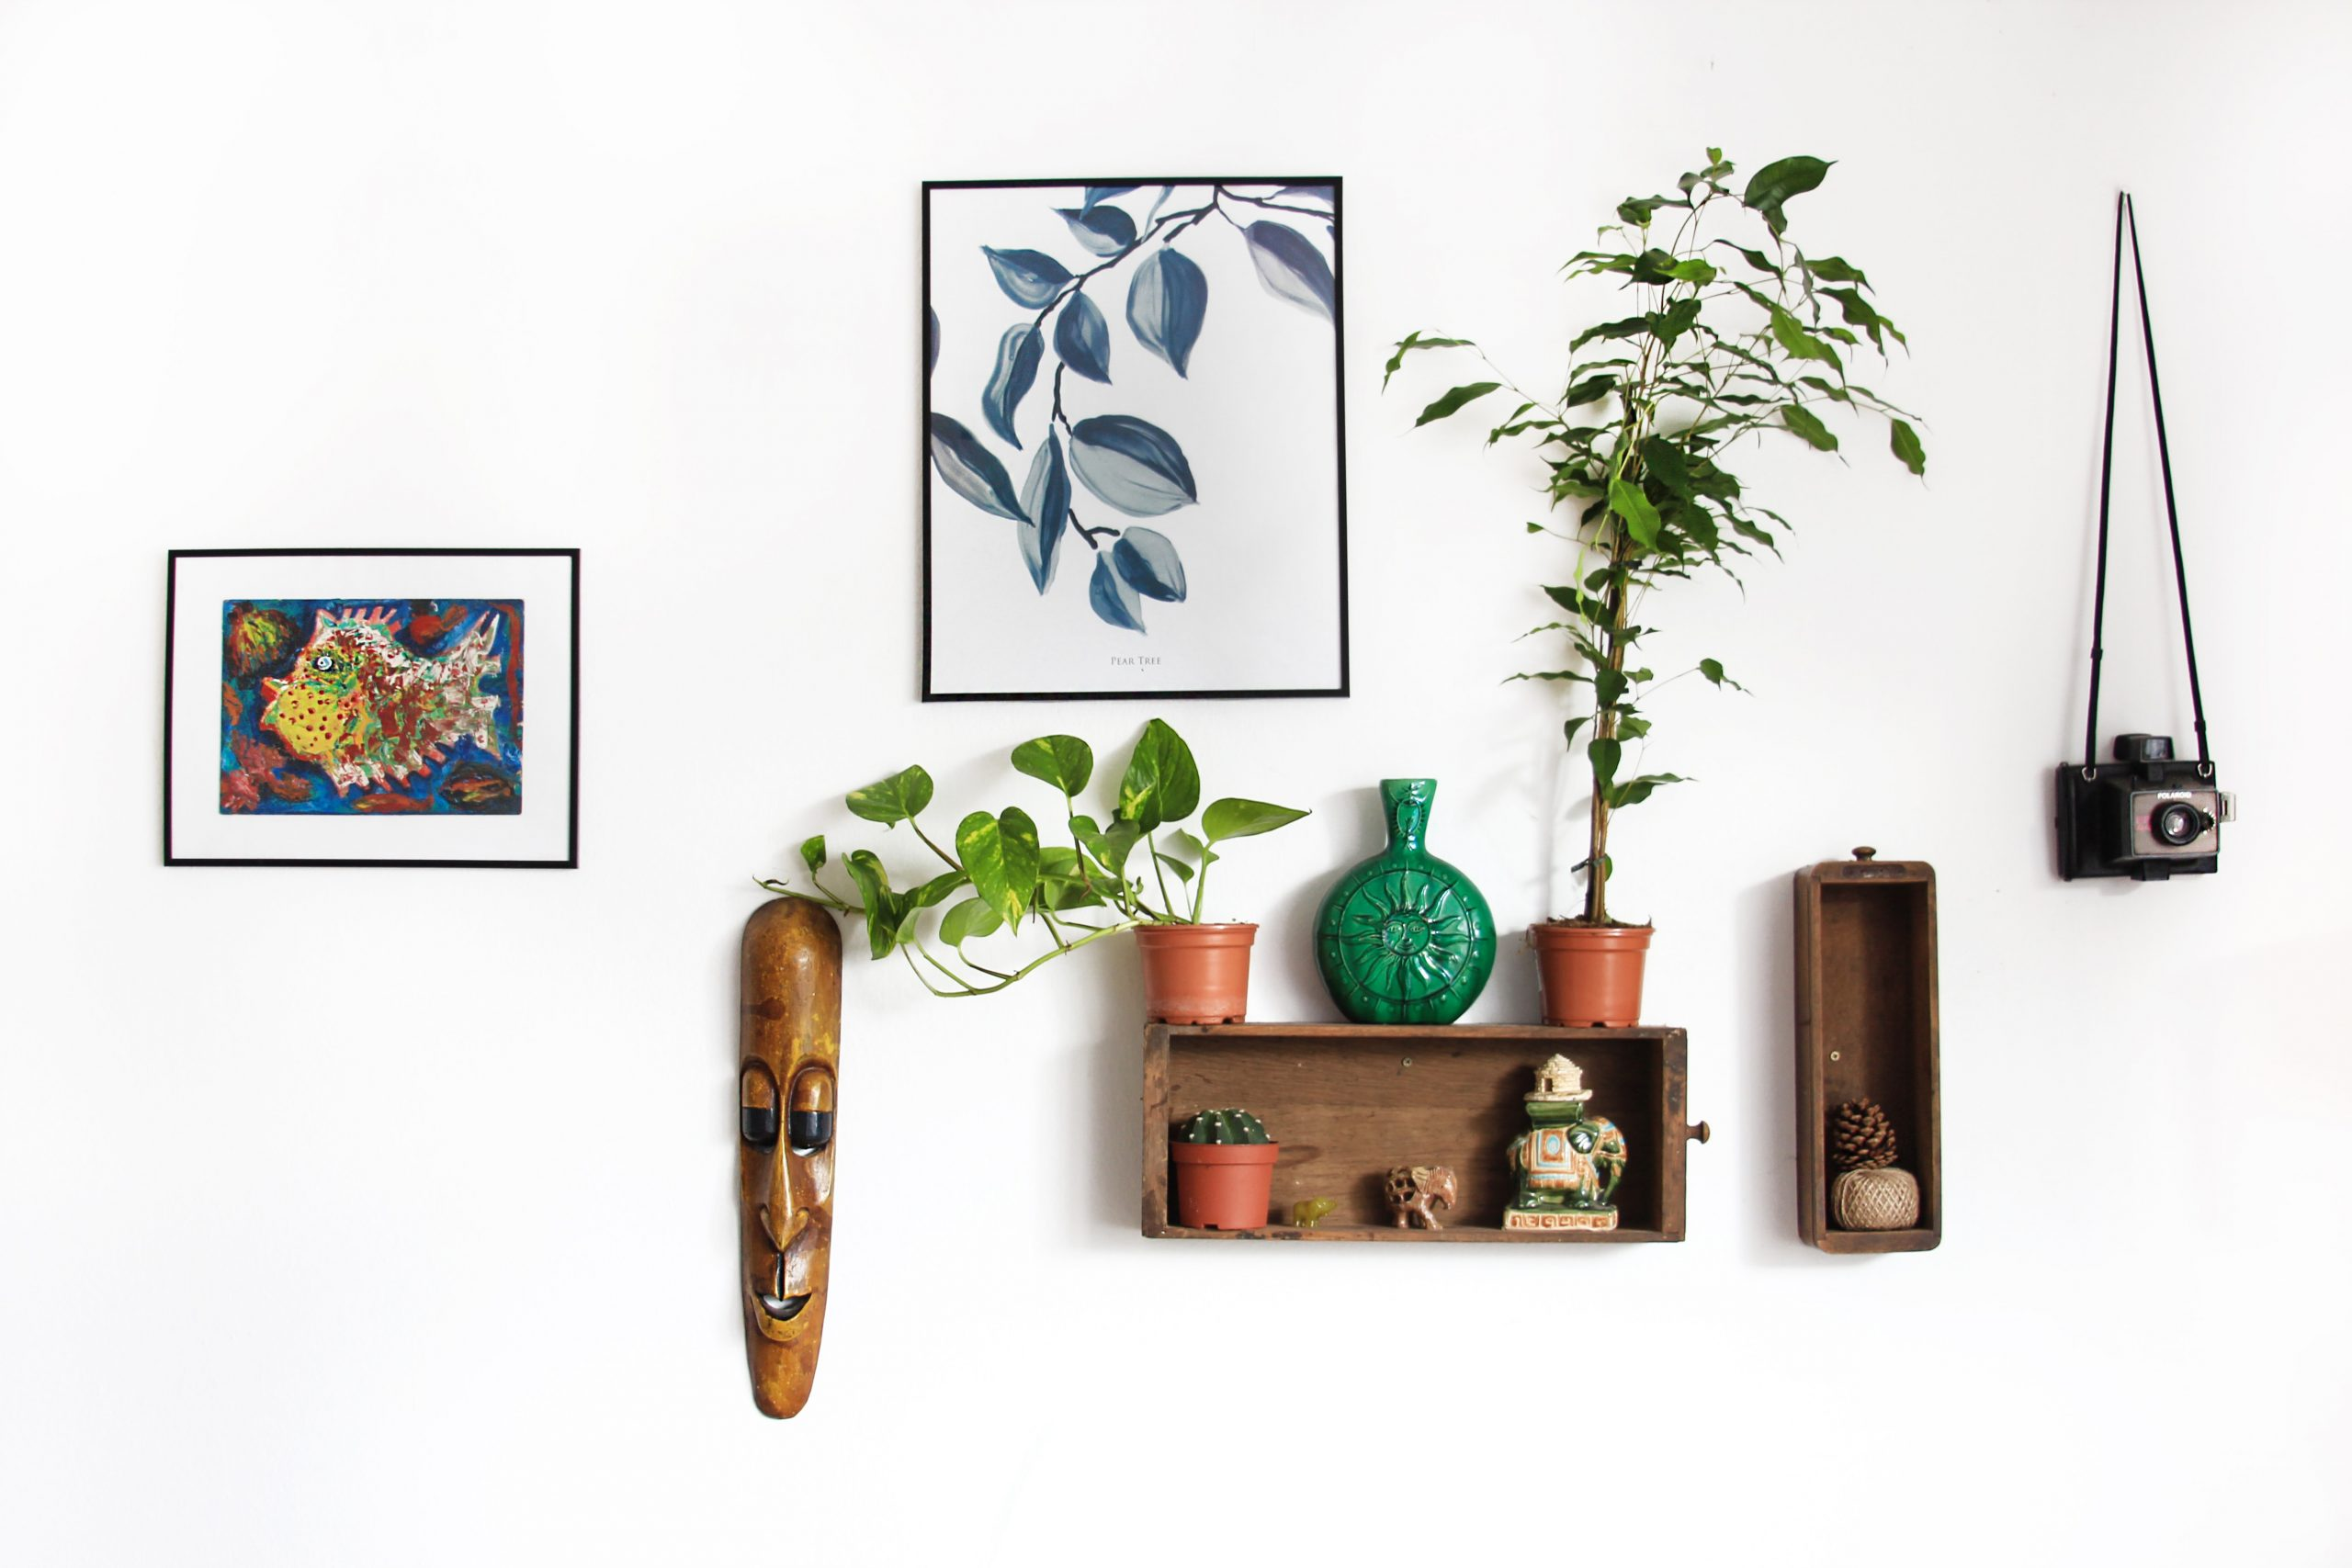 White wall with art and plants on a shelve